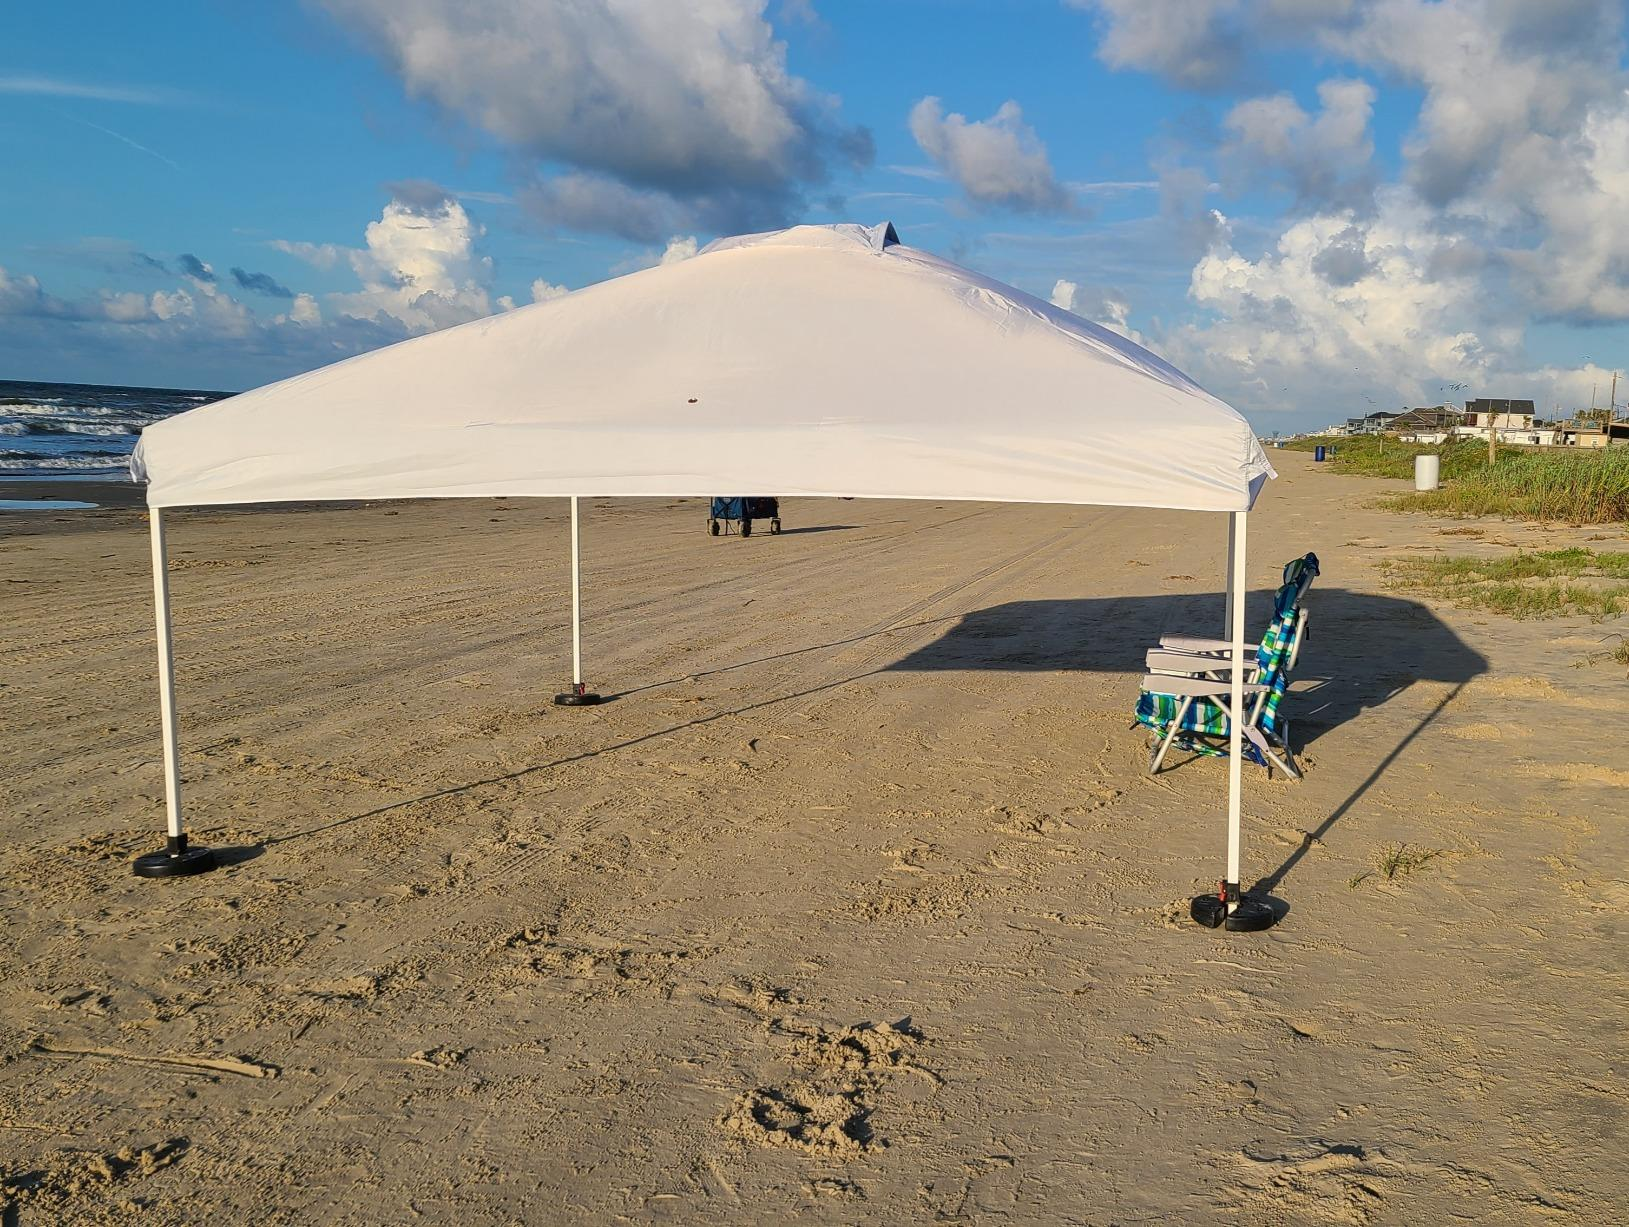 Nice C Pop Up Canopy Tent, Sun Shelter, Event Tent, Beach Shade, Sunshade Portable 10x10ft UPF 50+ with Roller Carry Bag, Steel Frame Umbrella Outdoor, Pool, Garden photo review